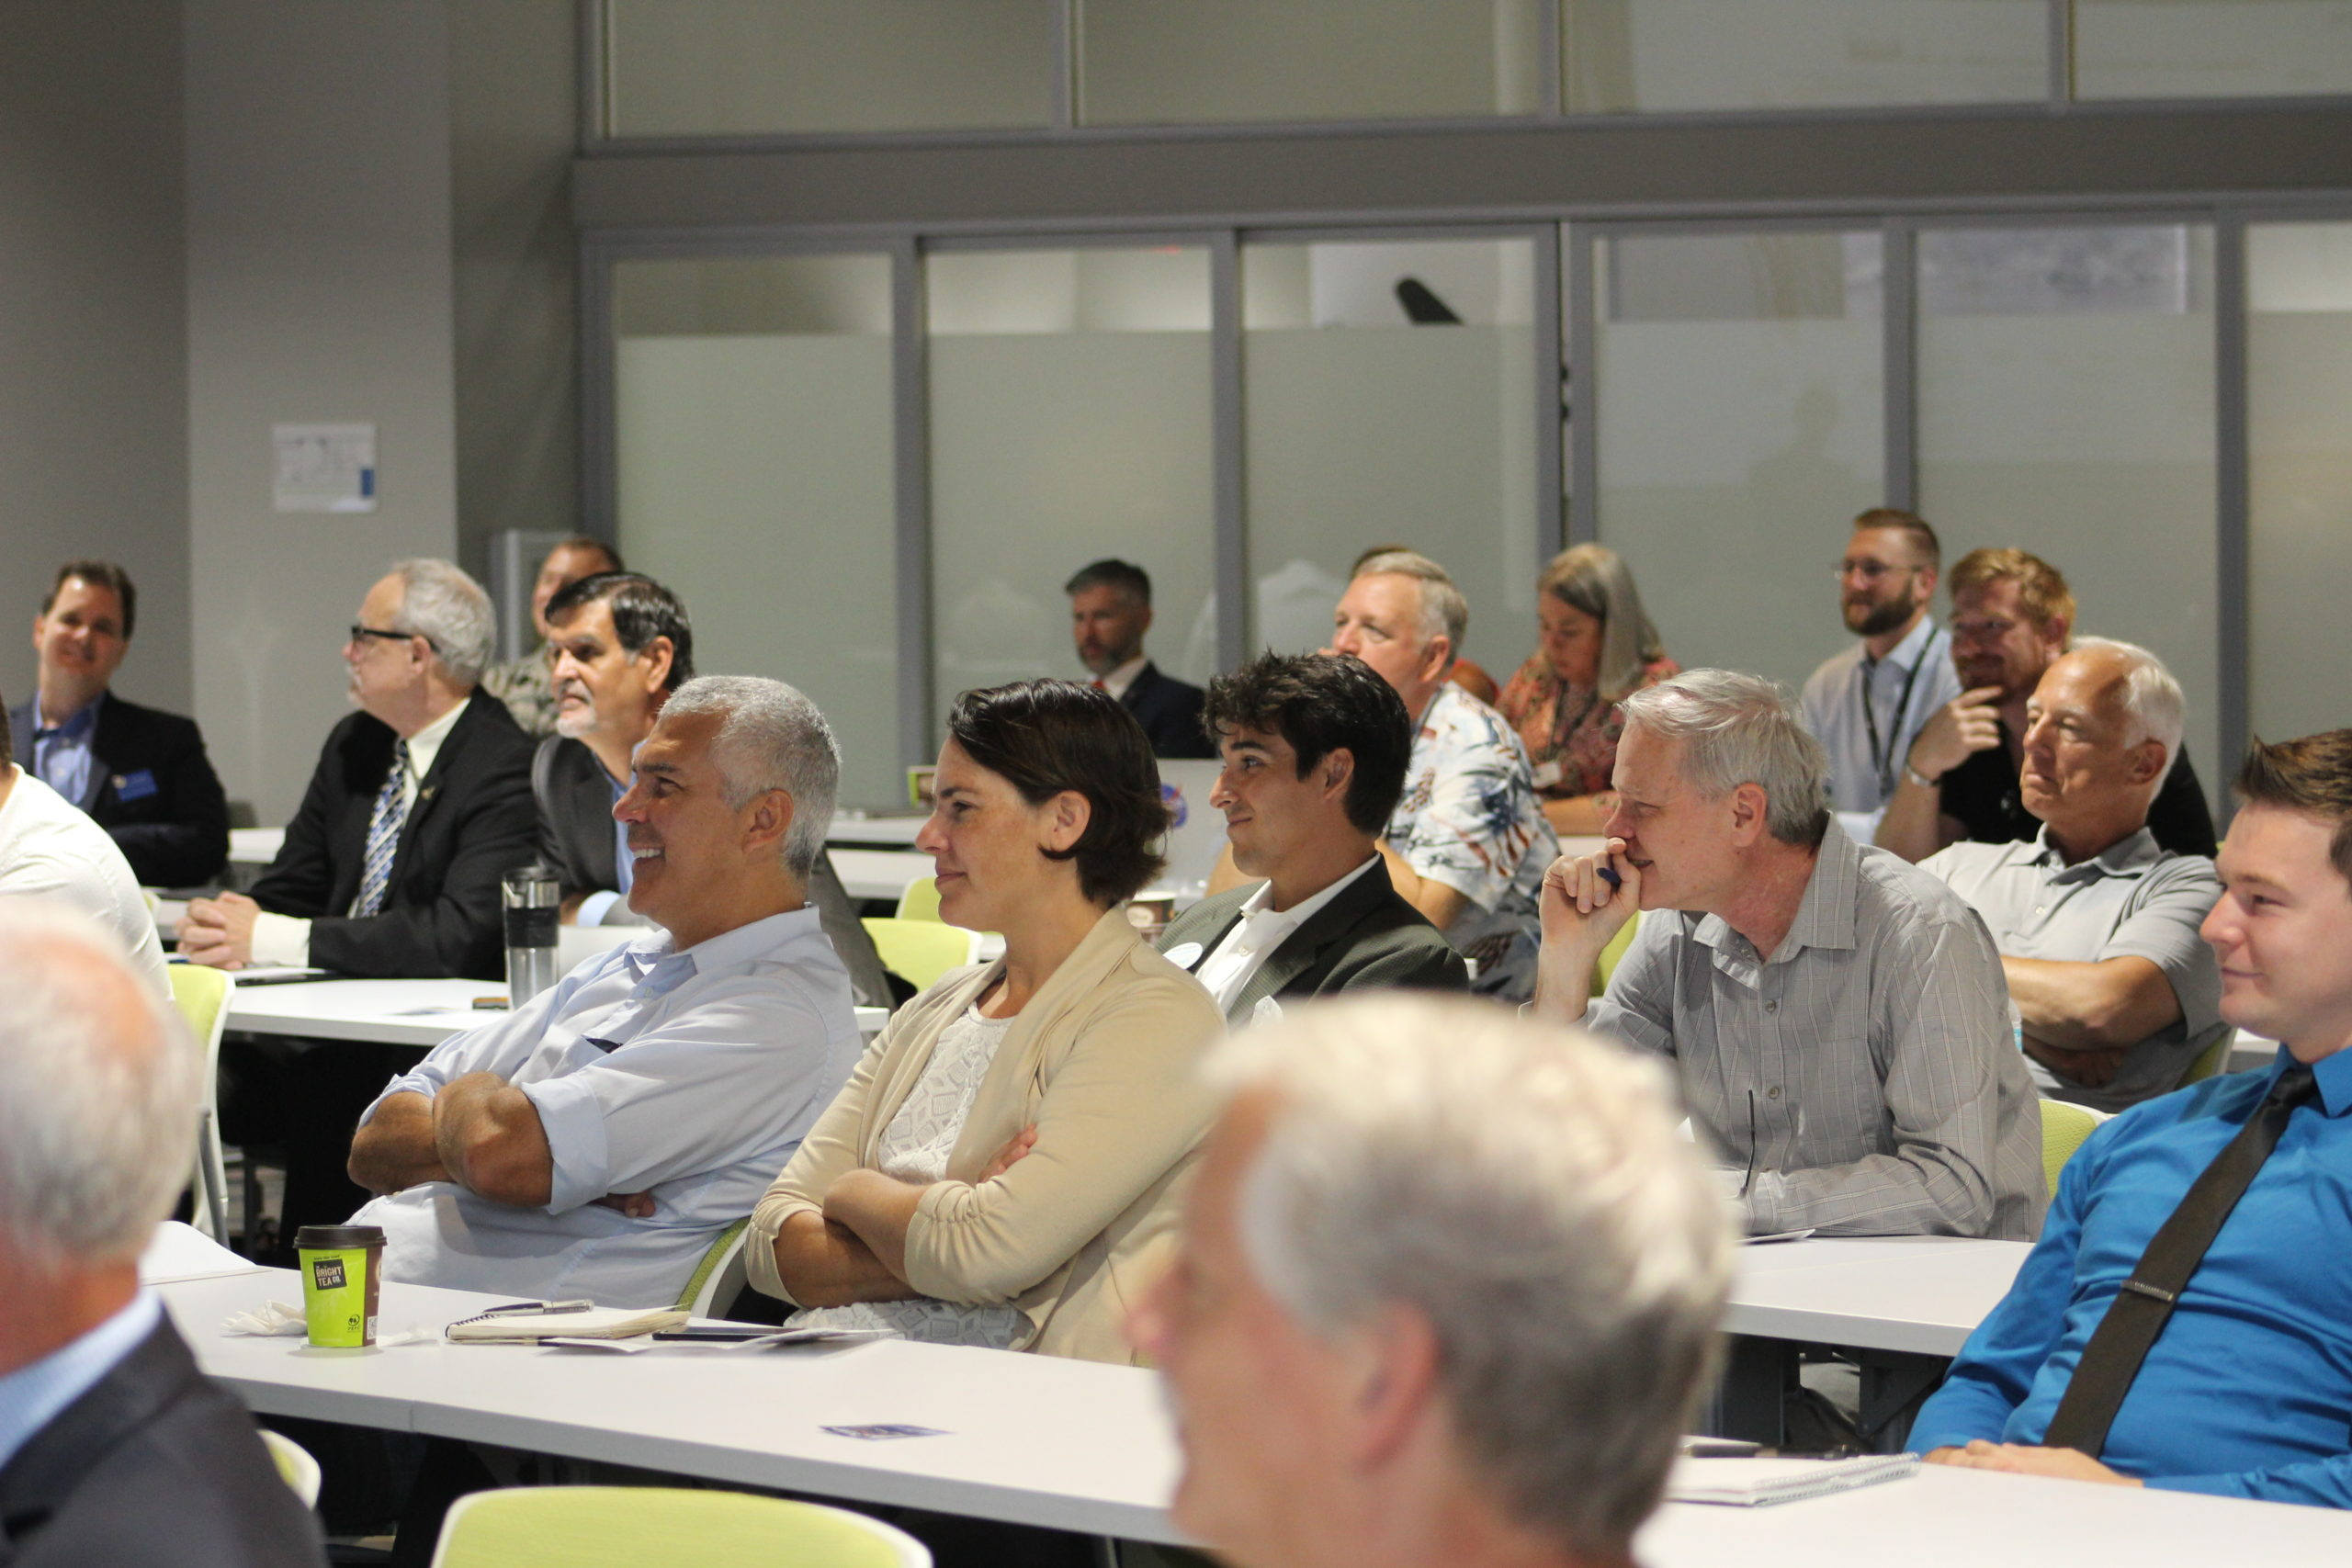 People sitting at event held at the Doolittle Institute